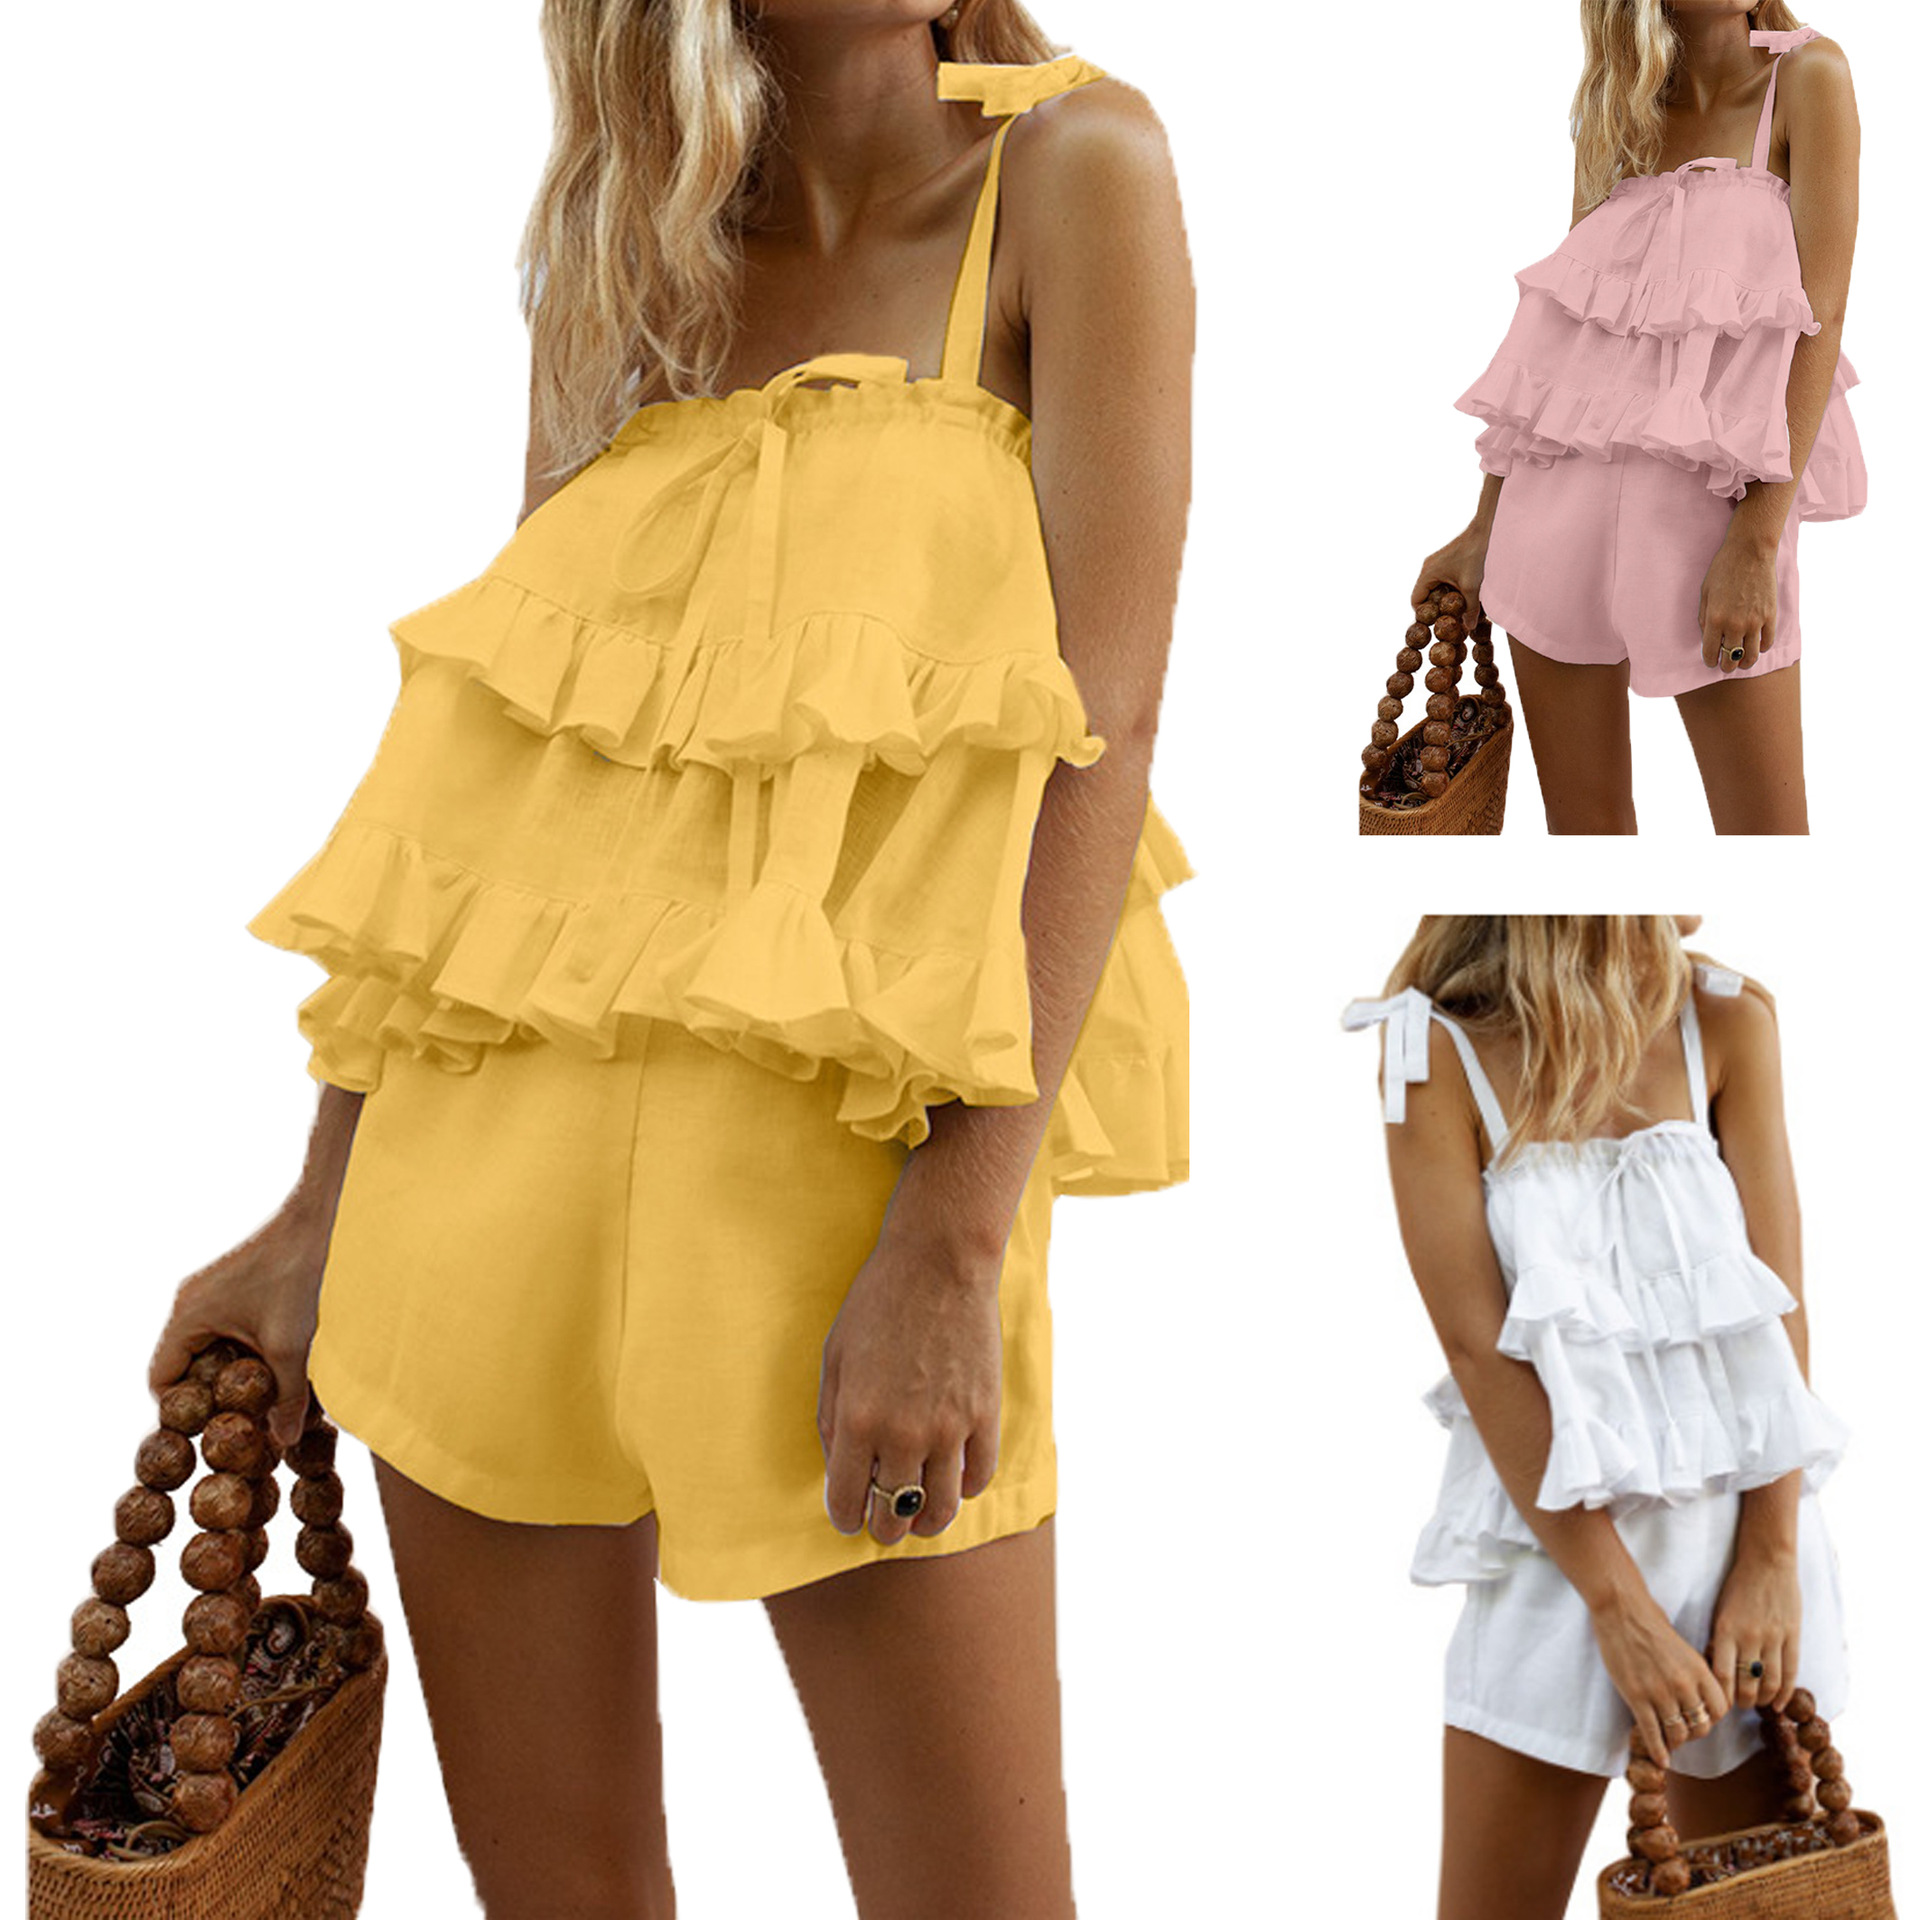 Hot Selling 2019 Summer New Style Europe And America Women's Lotus Leaf Top Shirt With Narrow Straps Cotton Linen Shorts Set Fc4